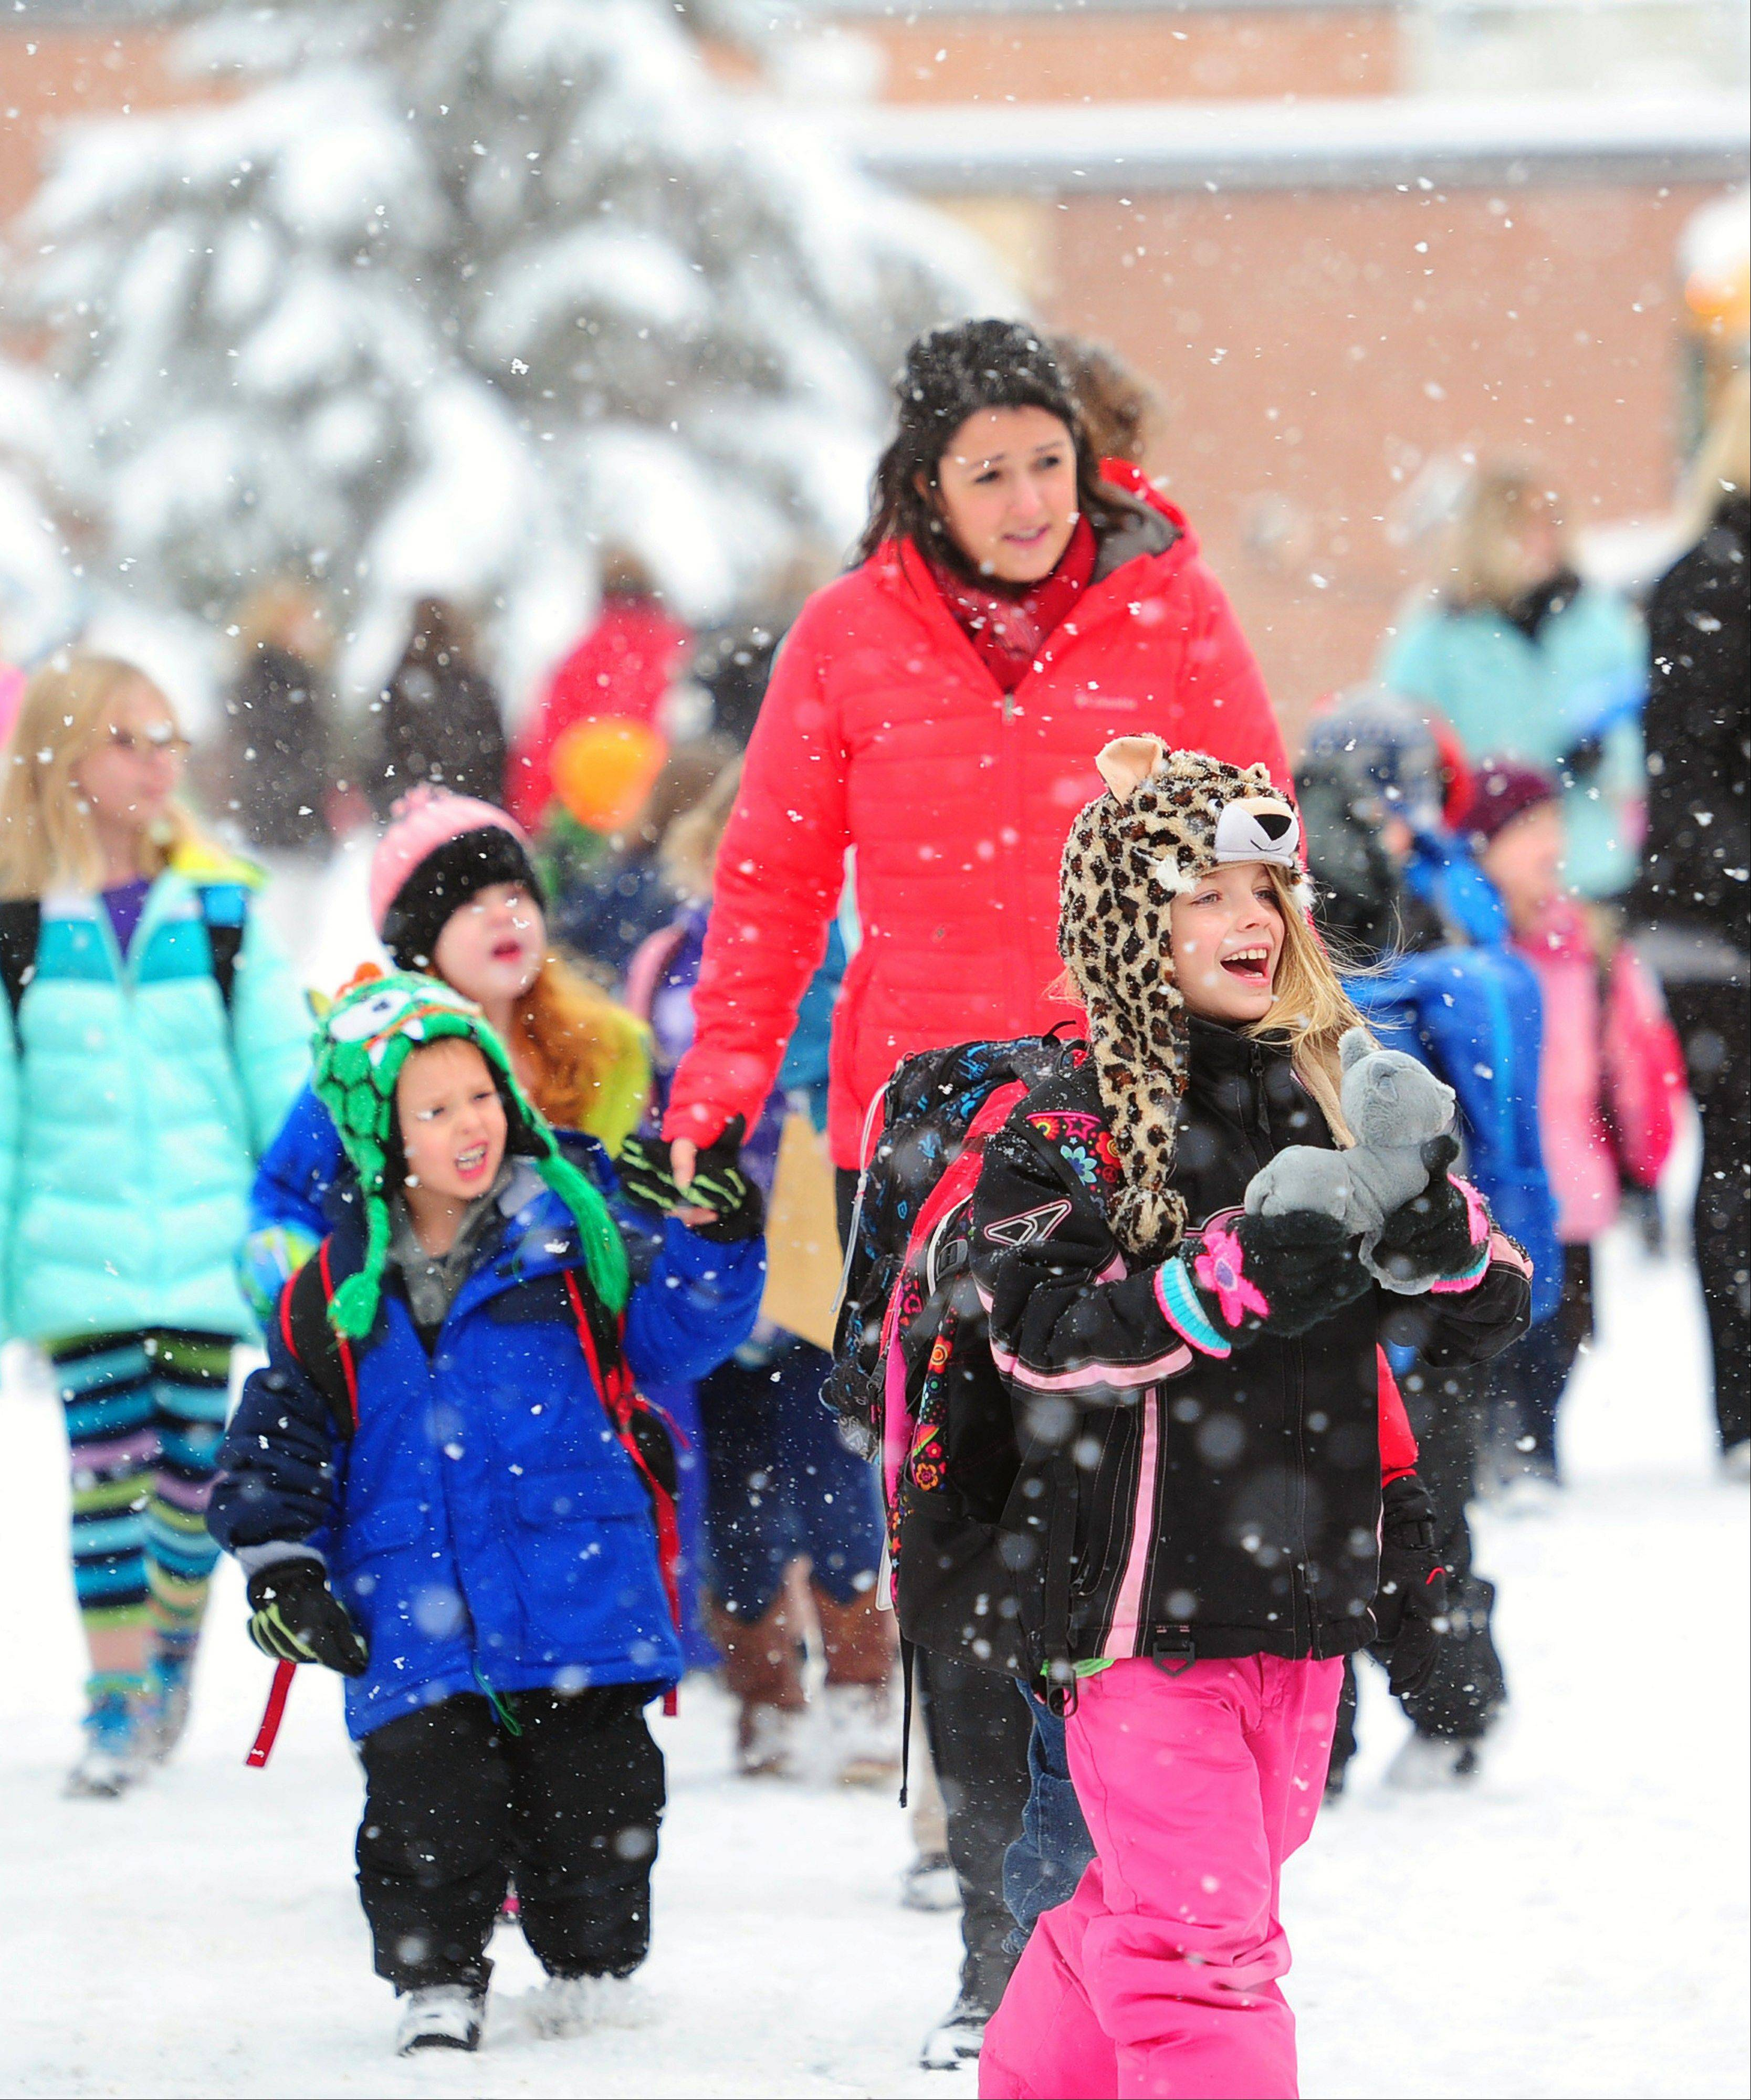 Riverside Elementary students and teachers walk to the waiting school buses on Wednesday Dec. 4, 2013, in Brainerd, Minn. Schools were open as the storm reached into the second day in Central Minnesota.